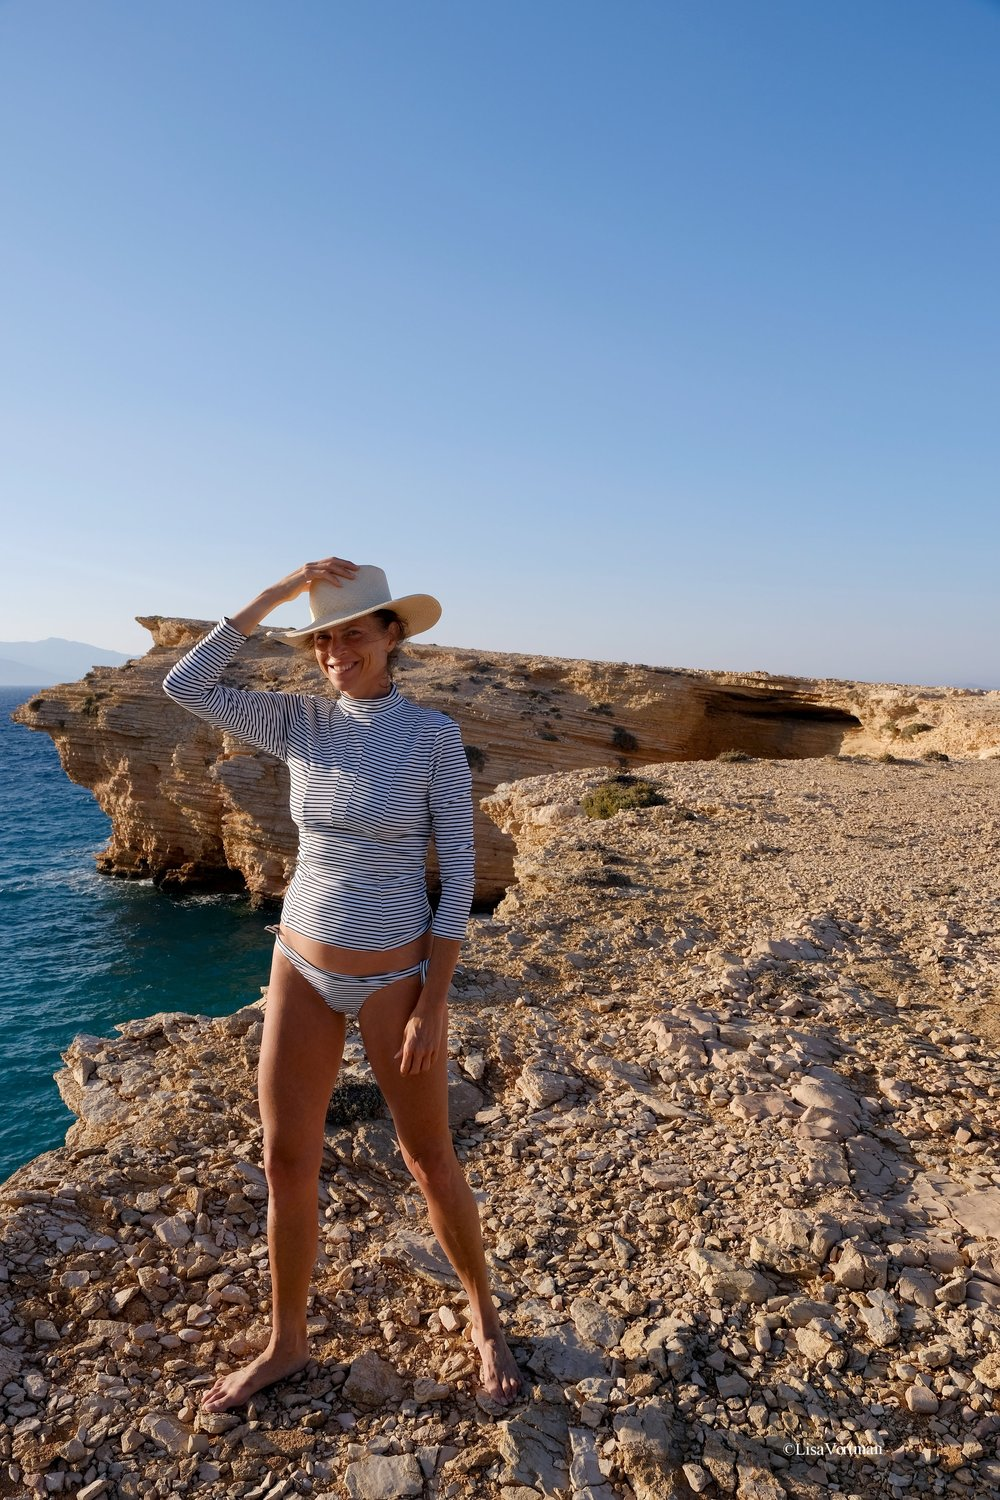 - Artist profilePress releasePatricia's travel trips for Naxos, Greece